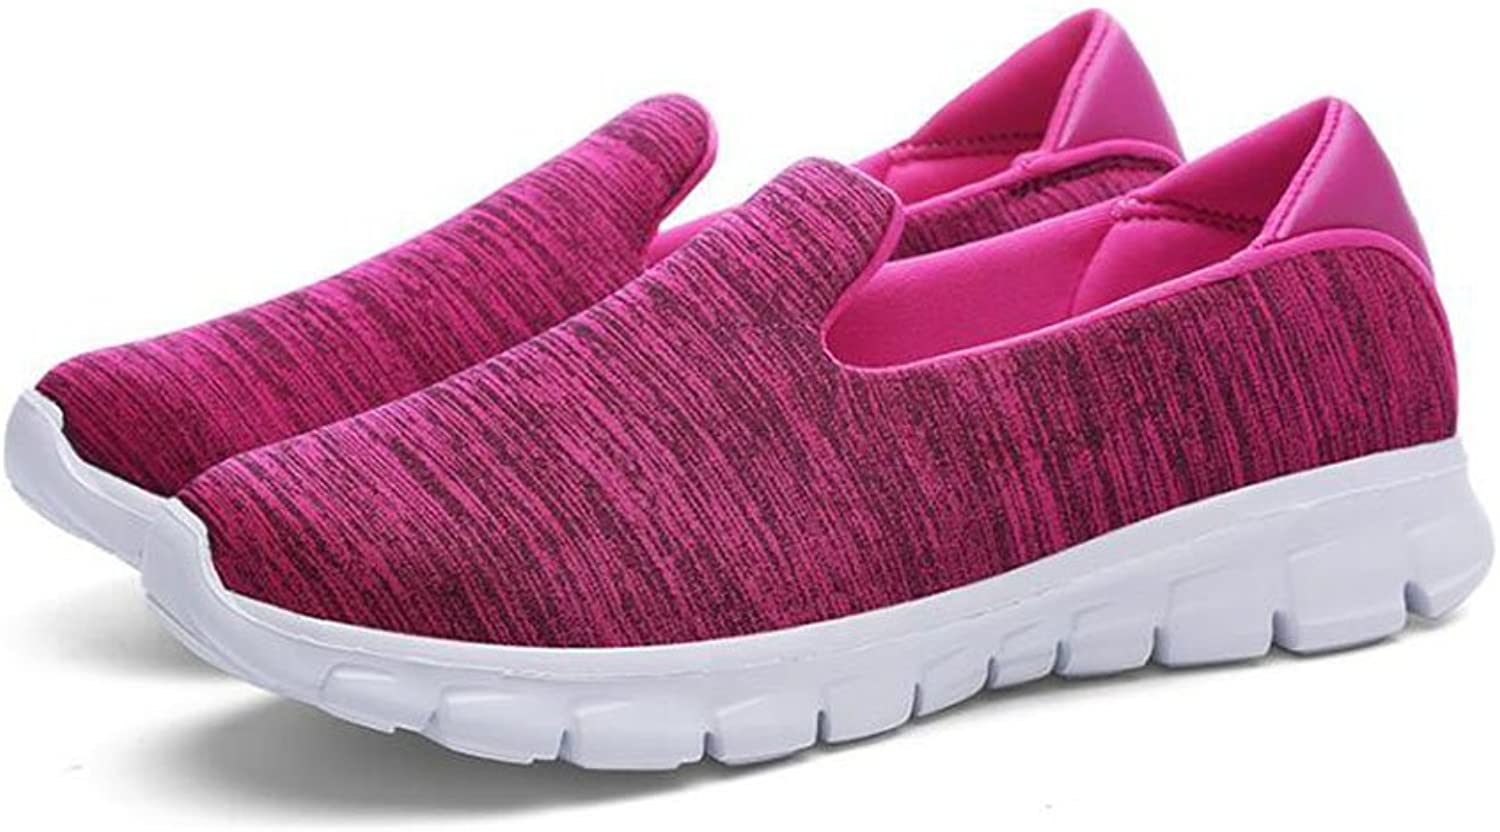 Exing Women's Sneakers Summer Walking shoes Wedge Heel for Casual Travel Pure color Breathable Sports Ladies shoes for Athletic Casual Office